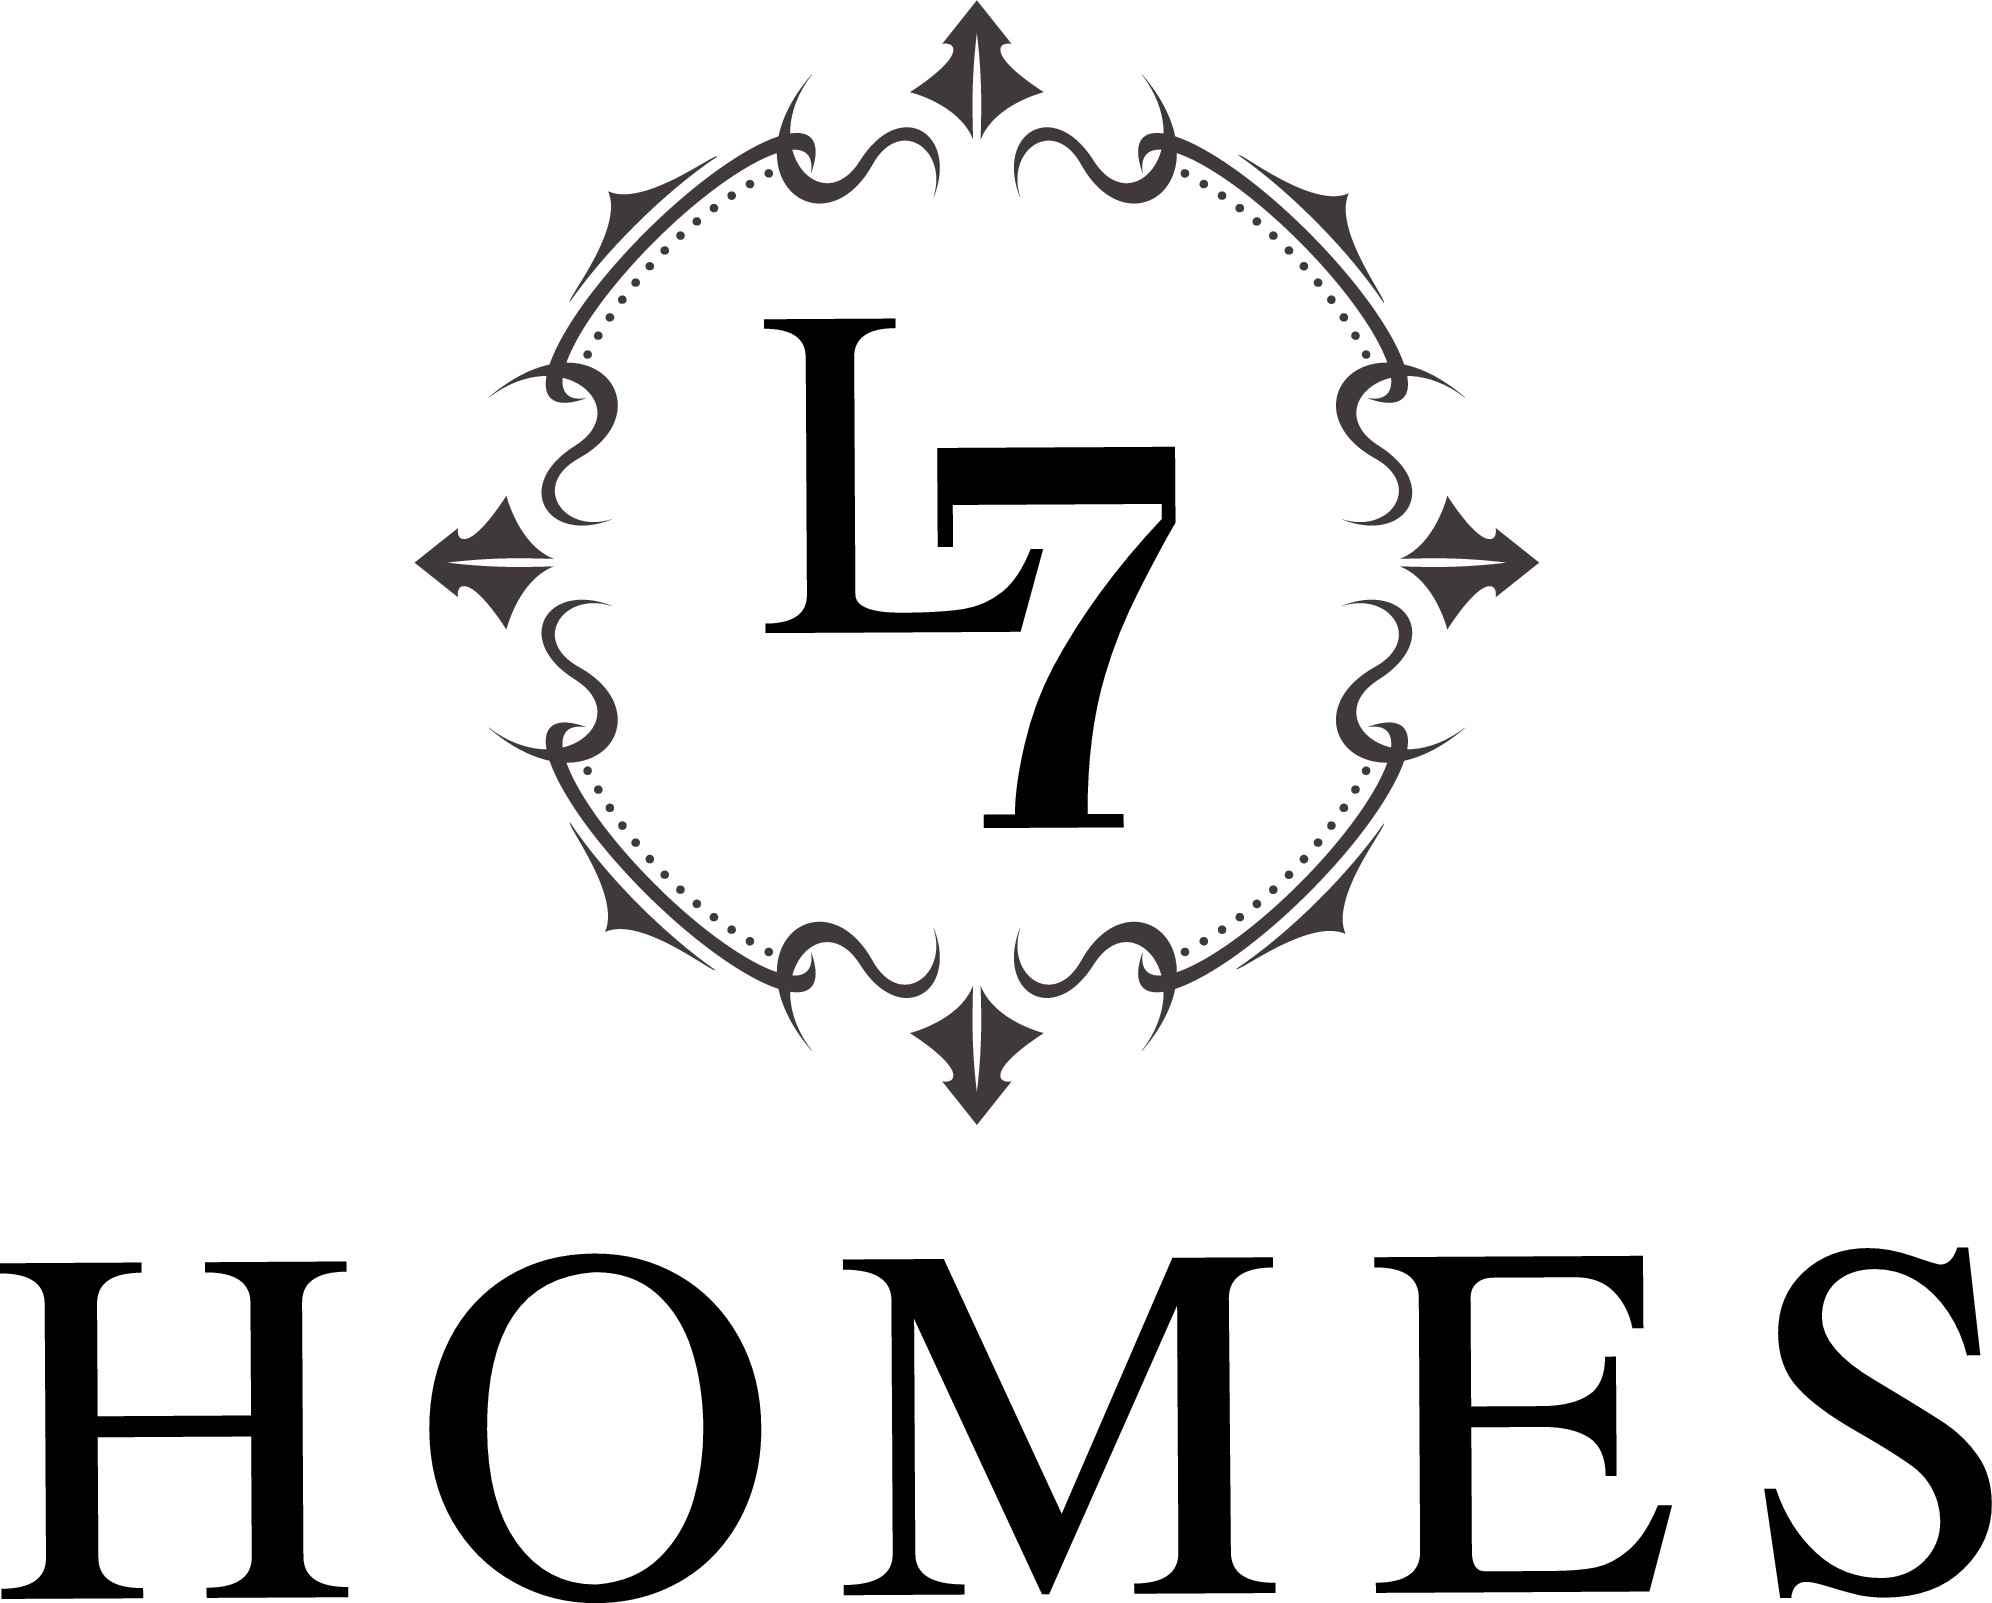 Create a destinct iconic logo for a luxury high end home builder